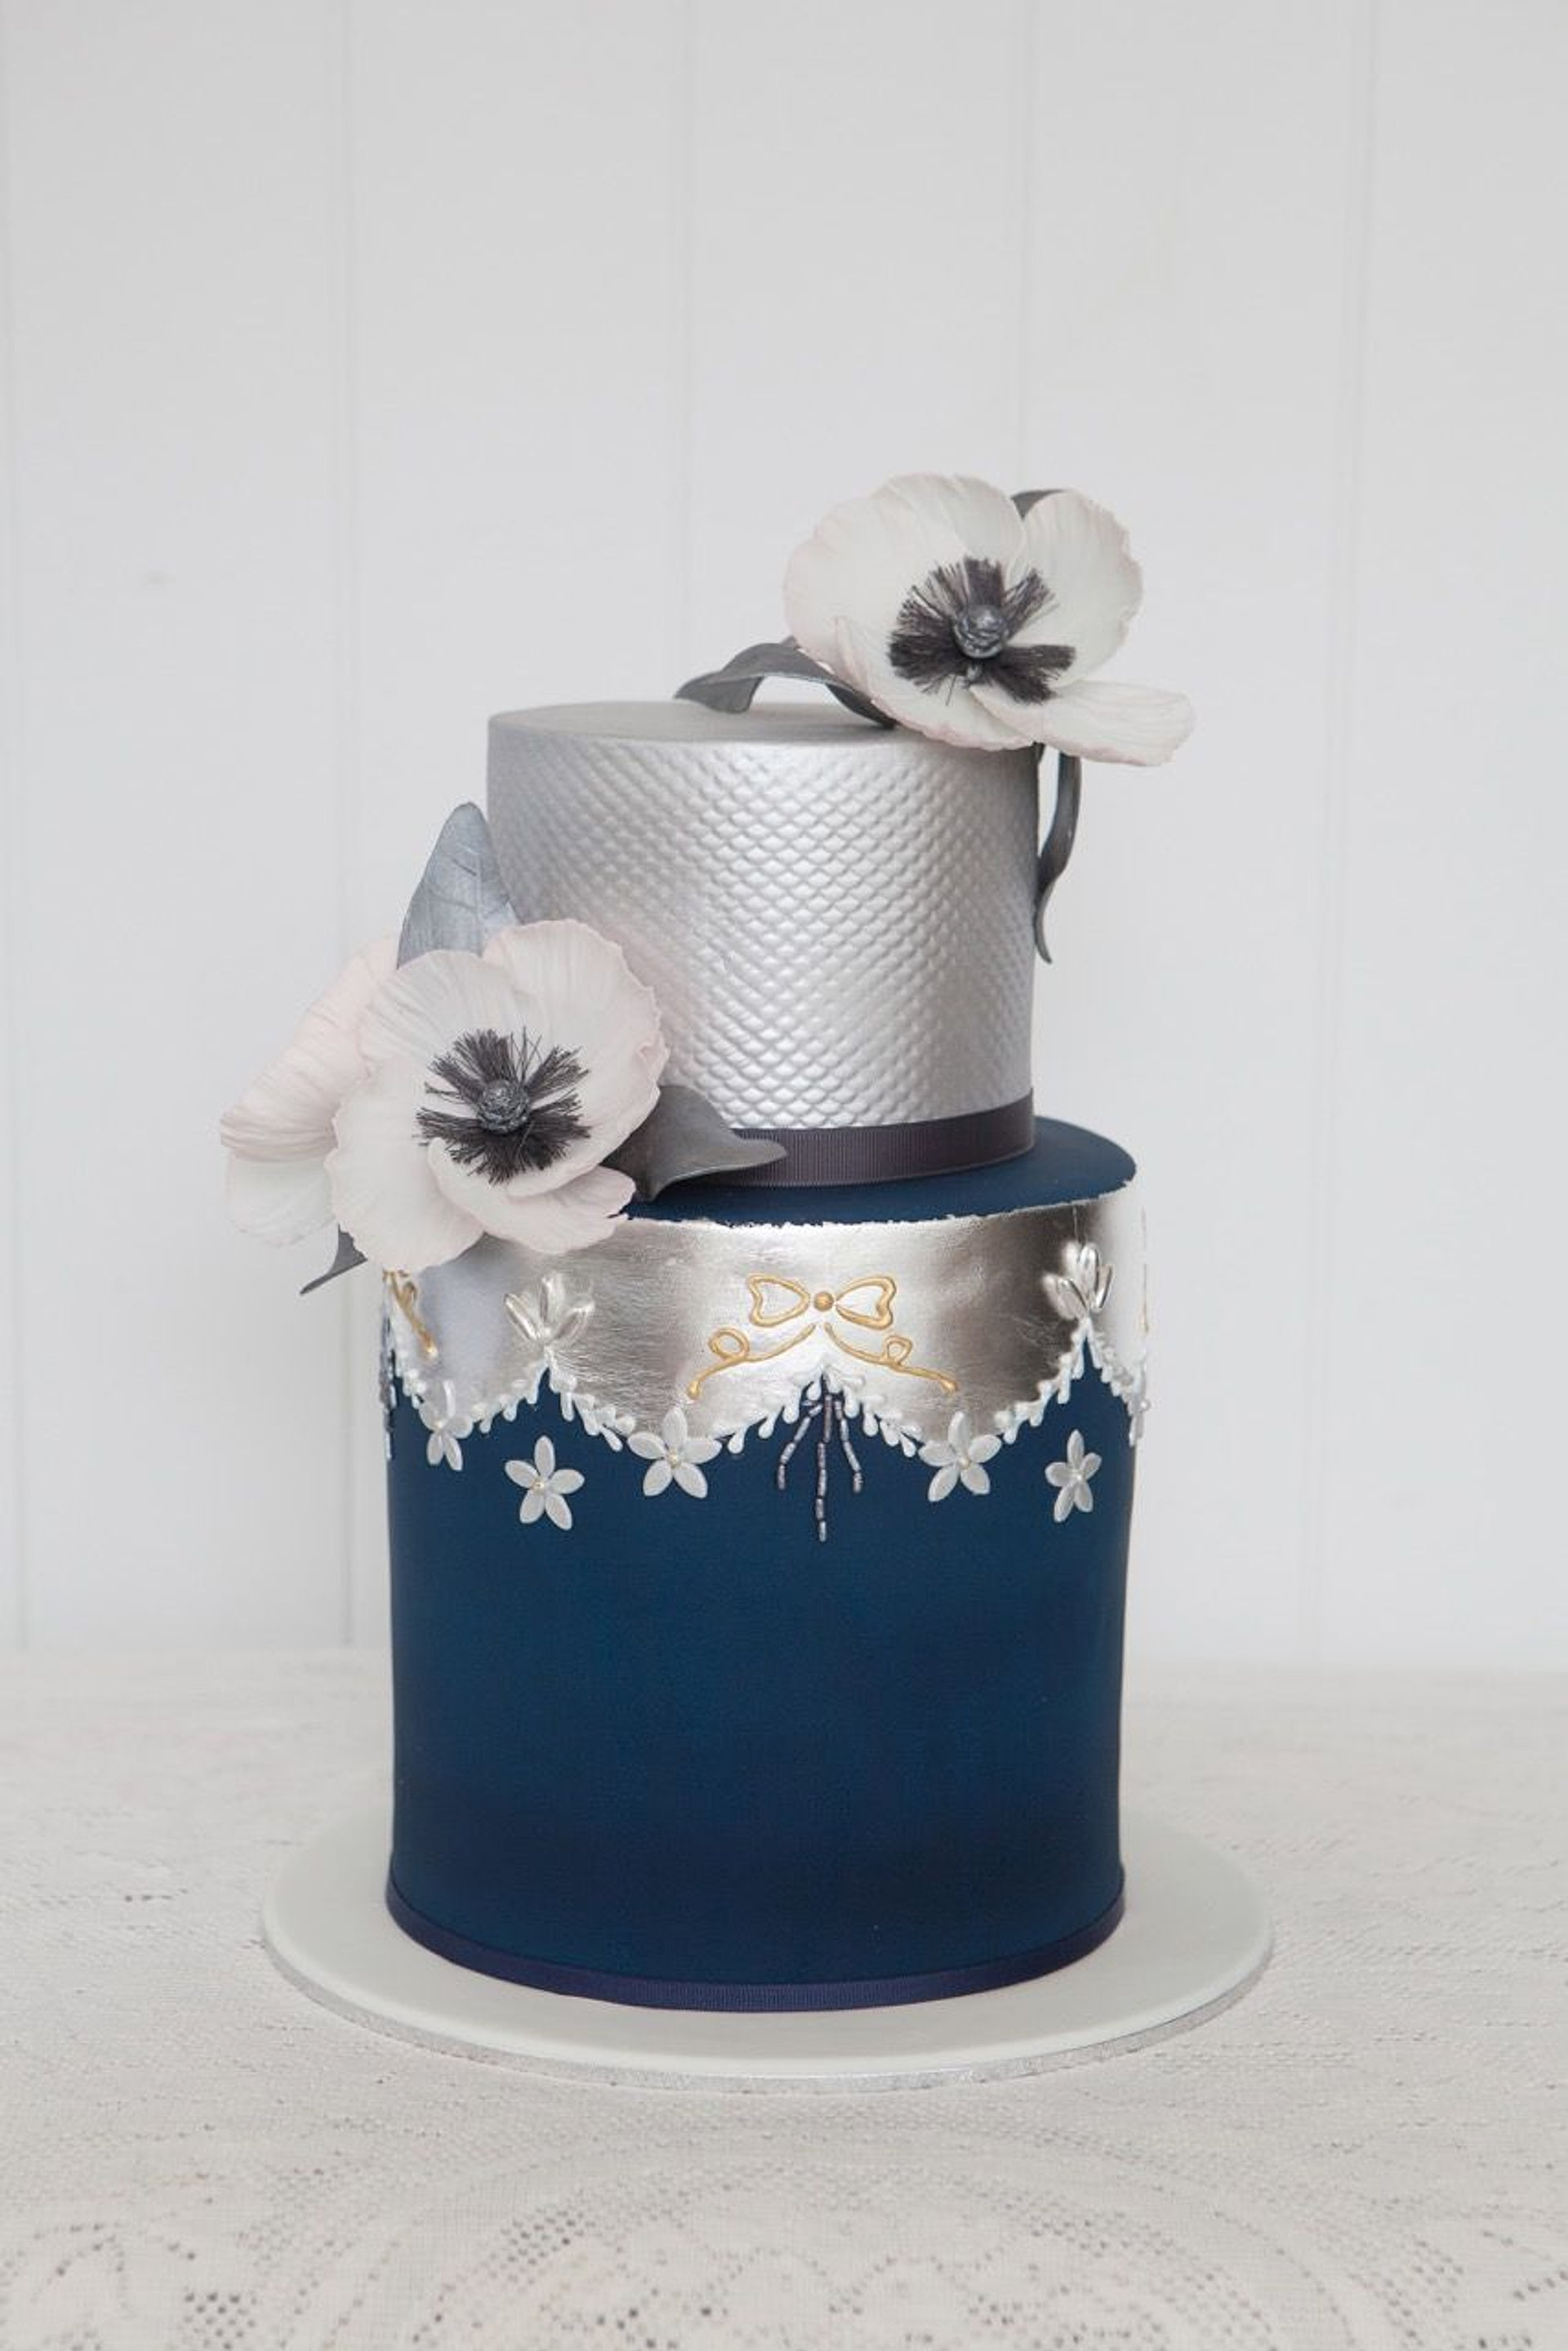 Enchanted Cakes By Yvette Cake Decorating Illawarra Region